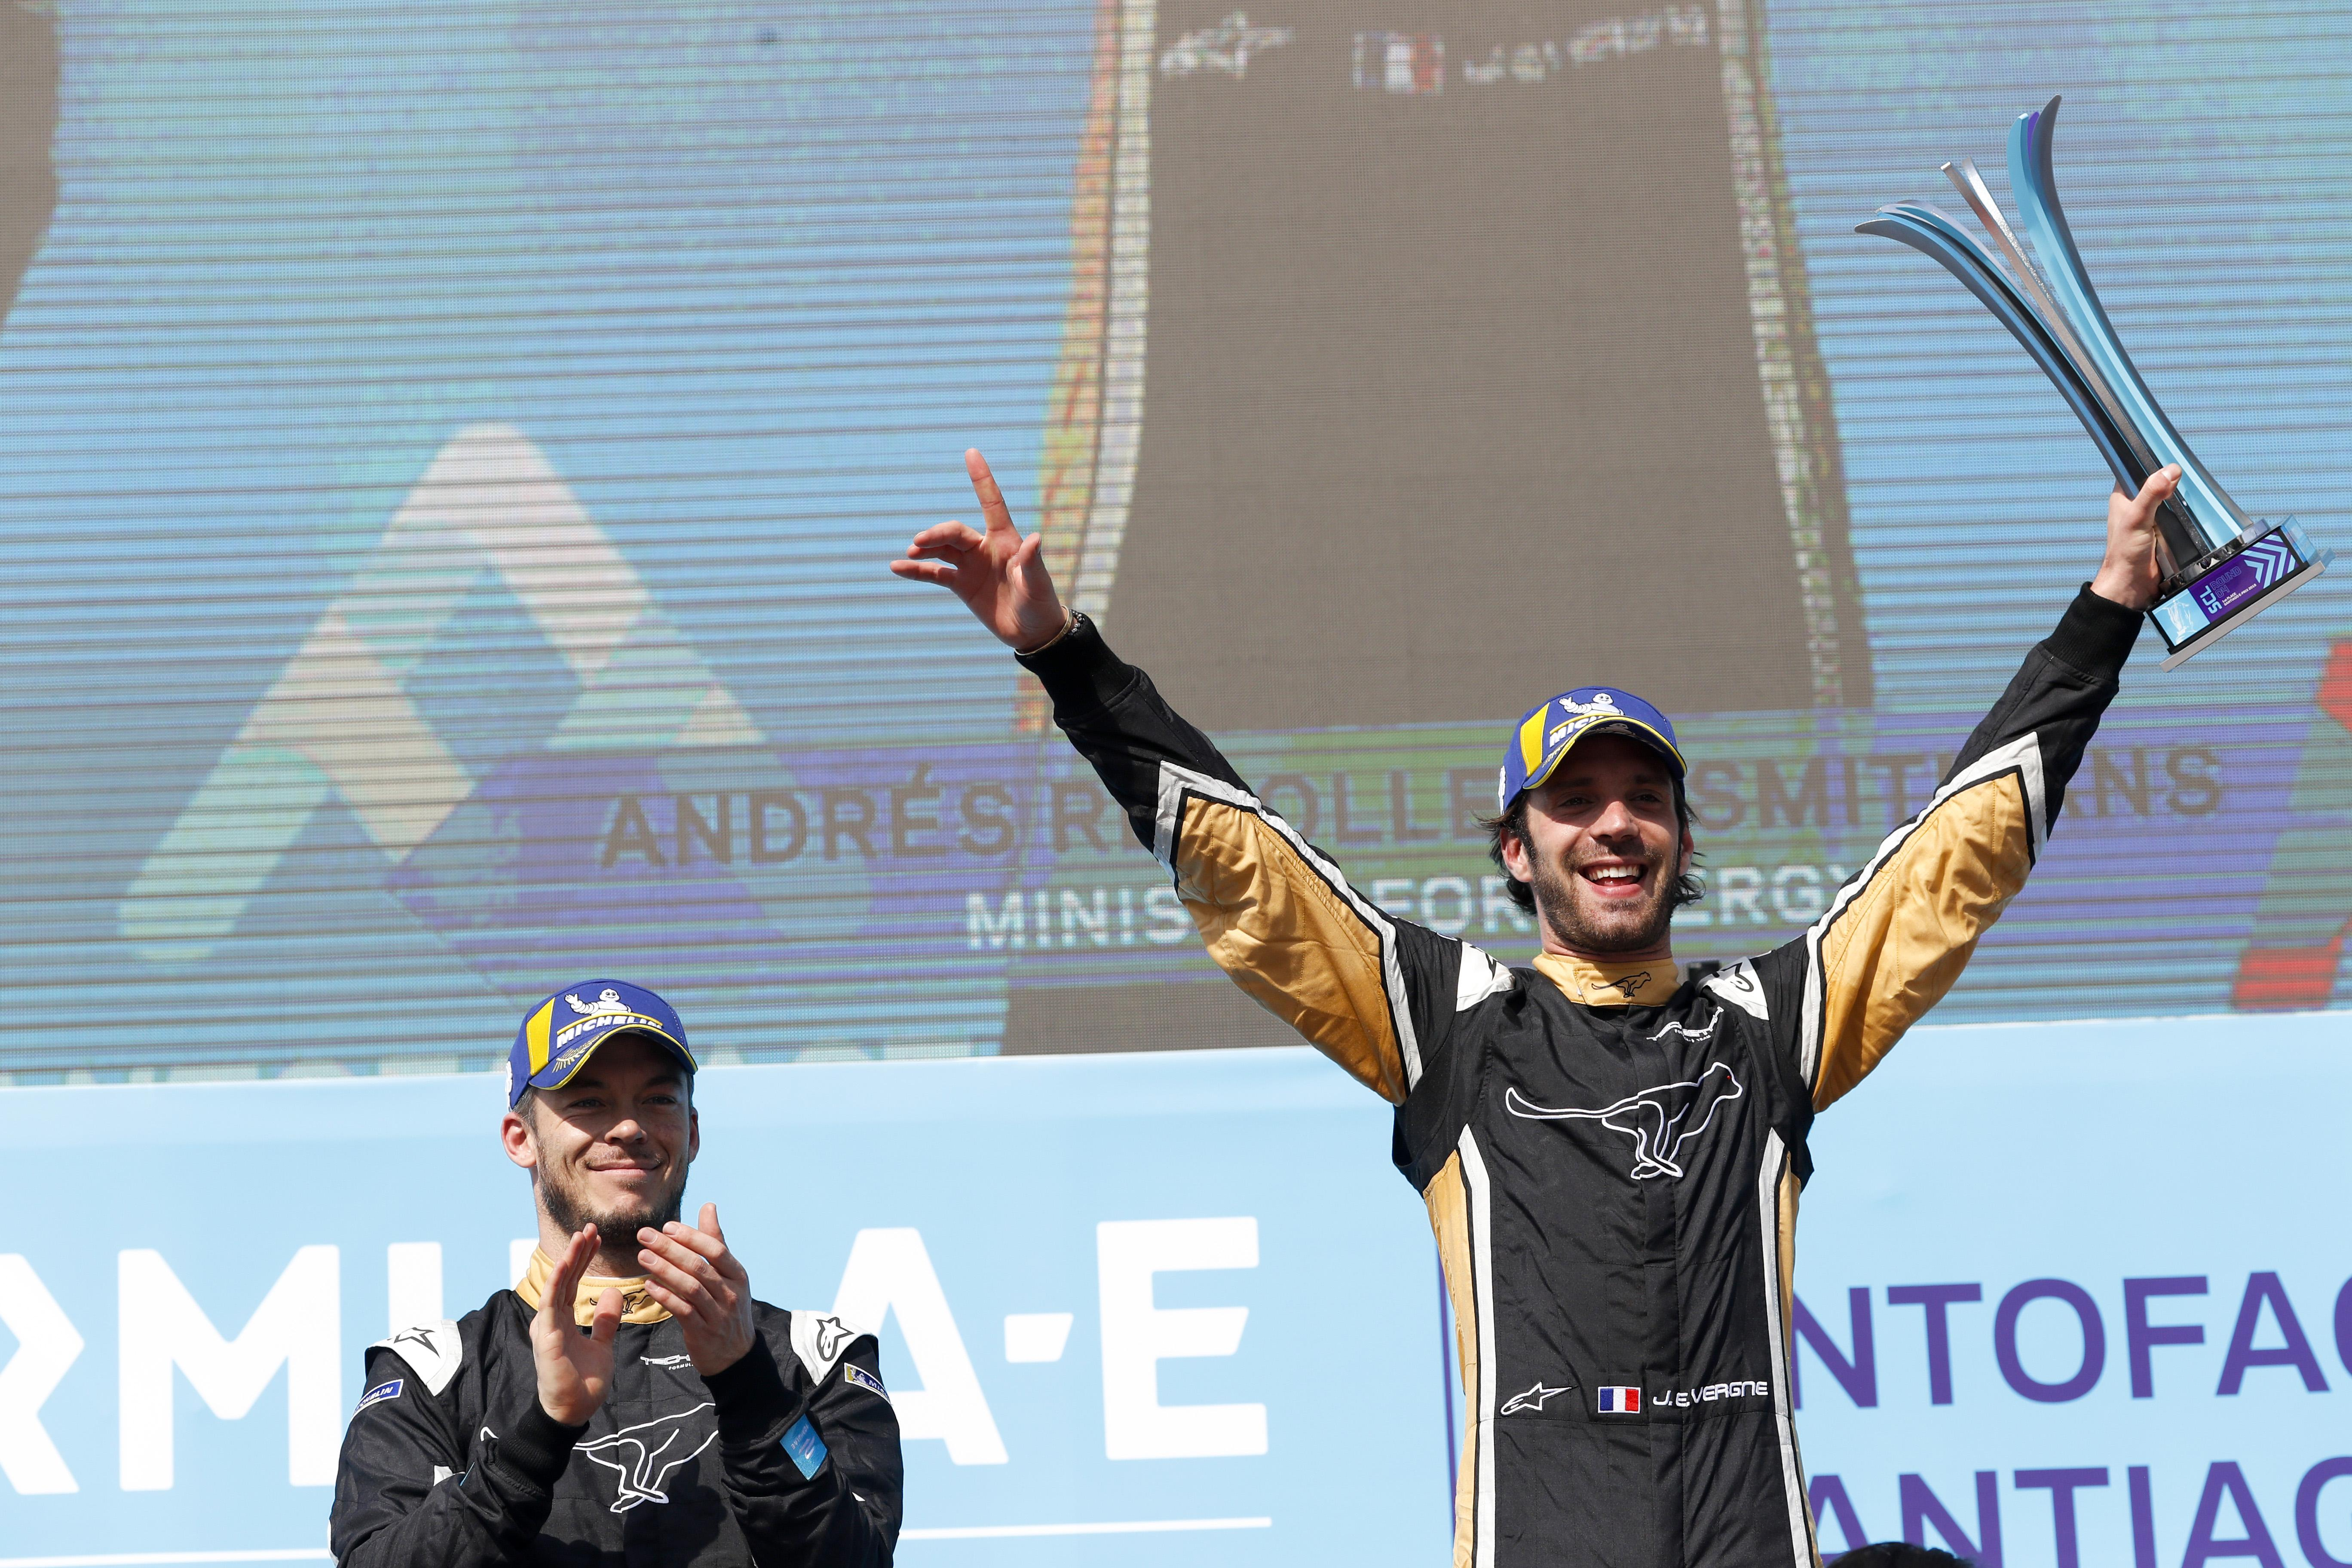 Jean-Eric Vergne won last time out in Santiago E-Prix